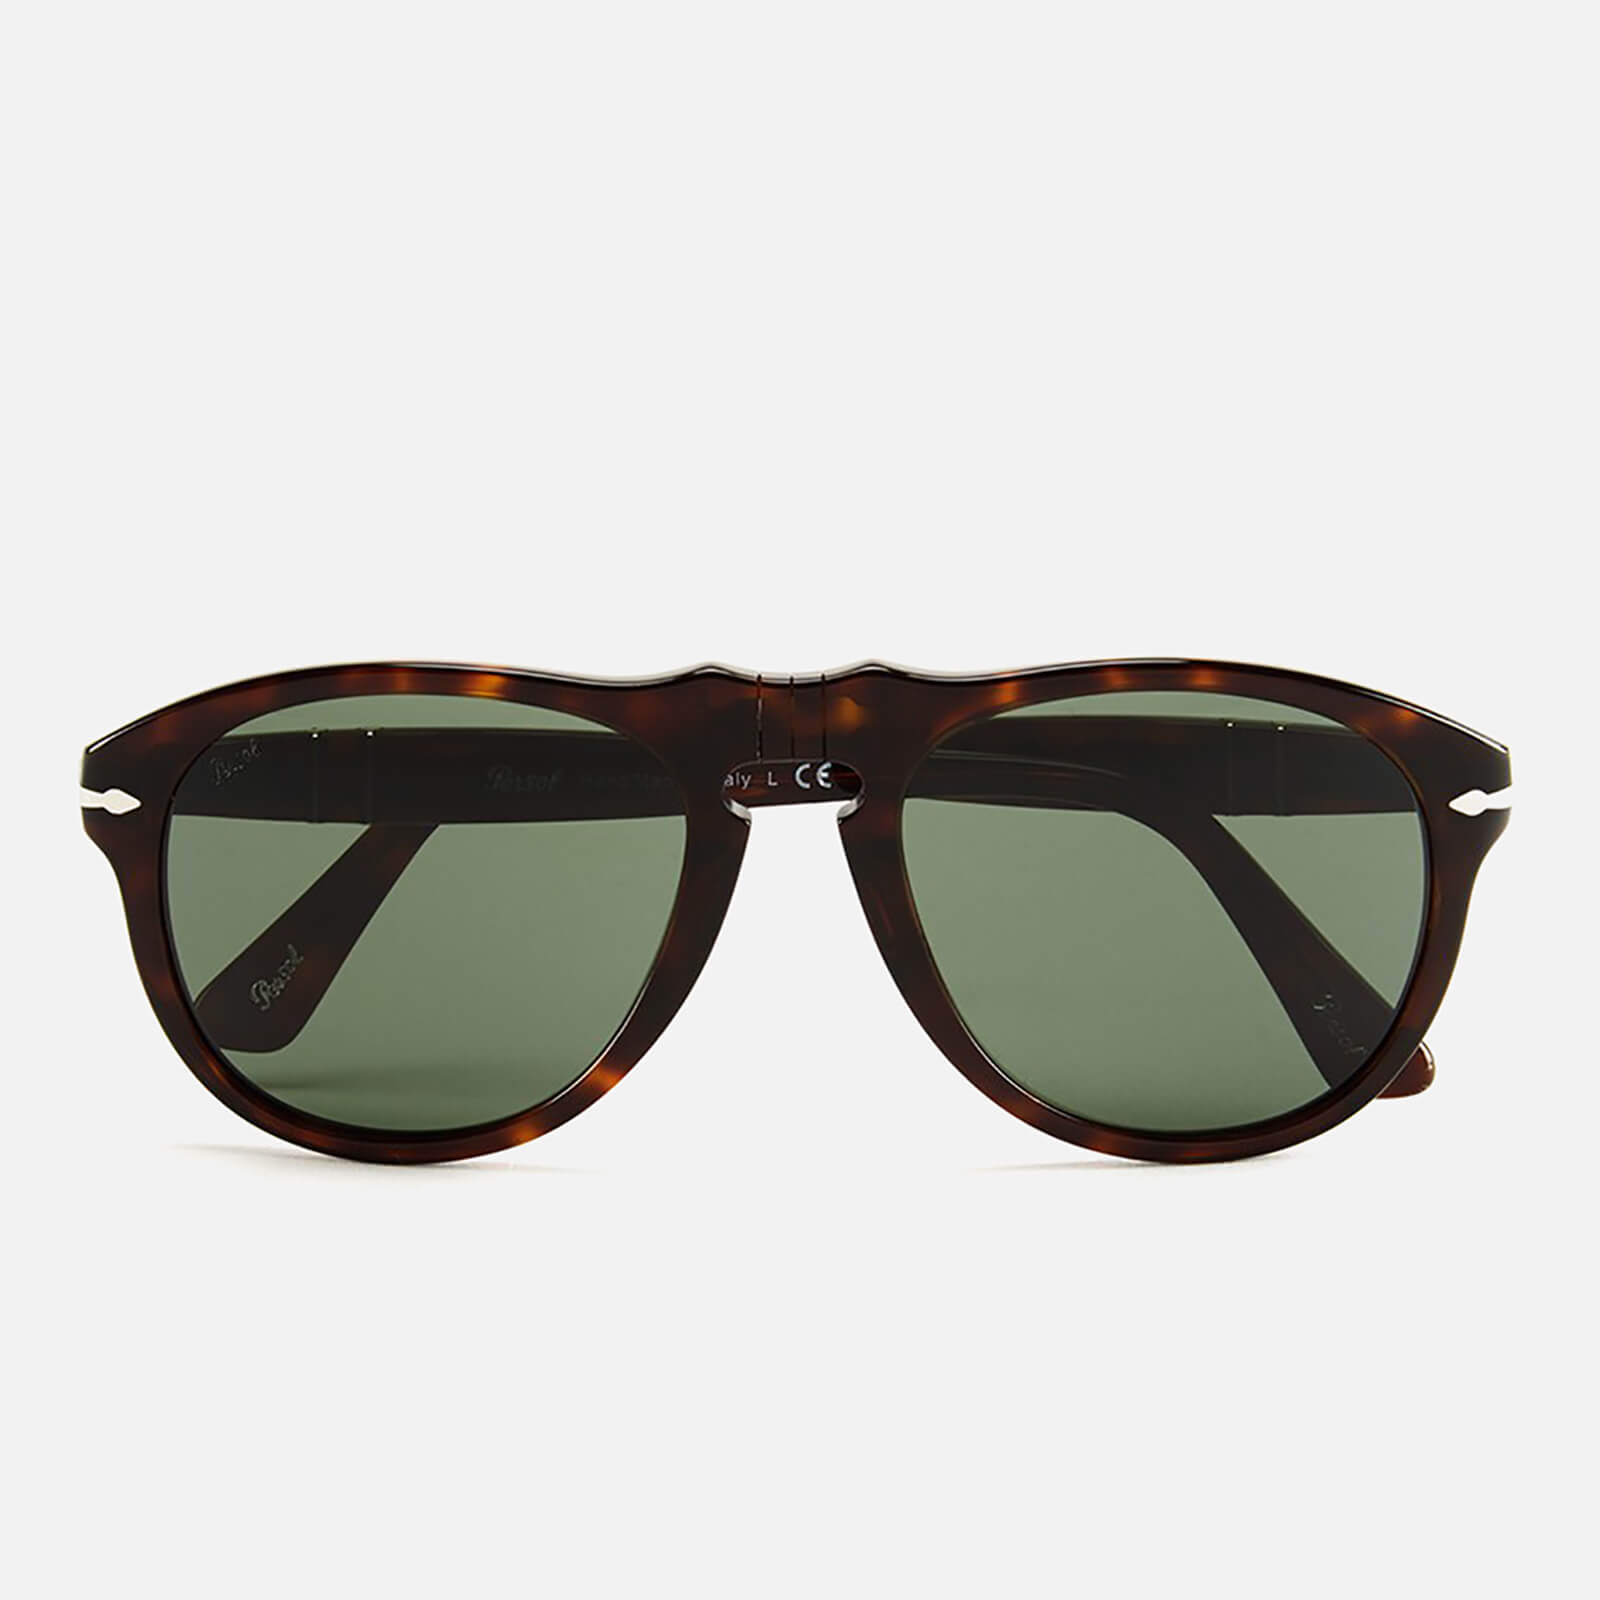 be370aa14f1b3 Persol D-Frame Men s Sunglasses - Havana - Free UK Delivery over £50